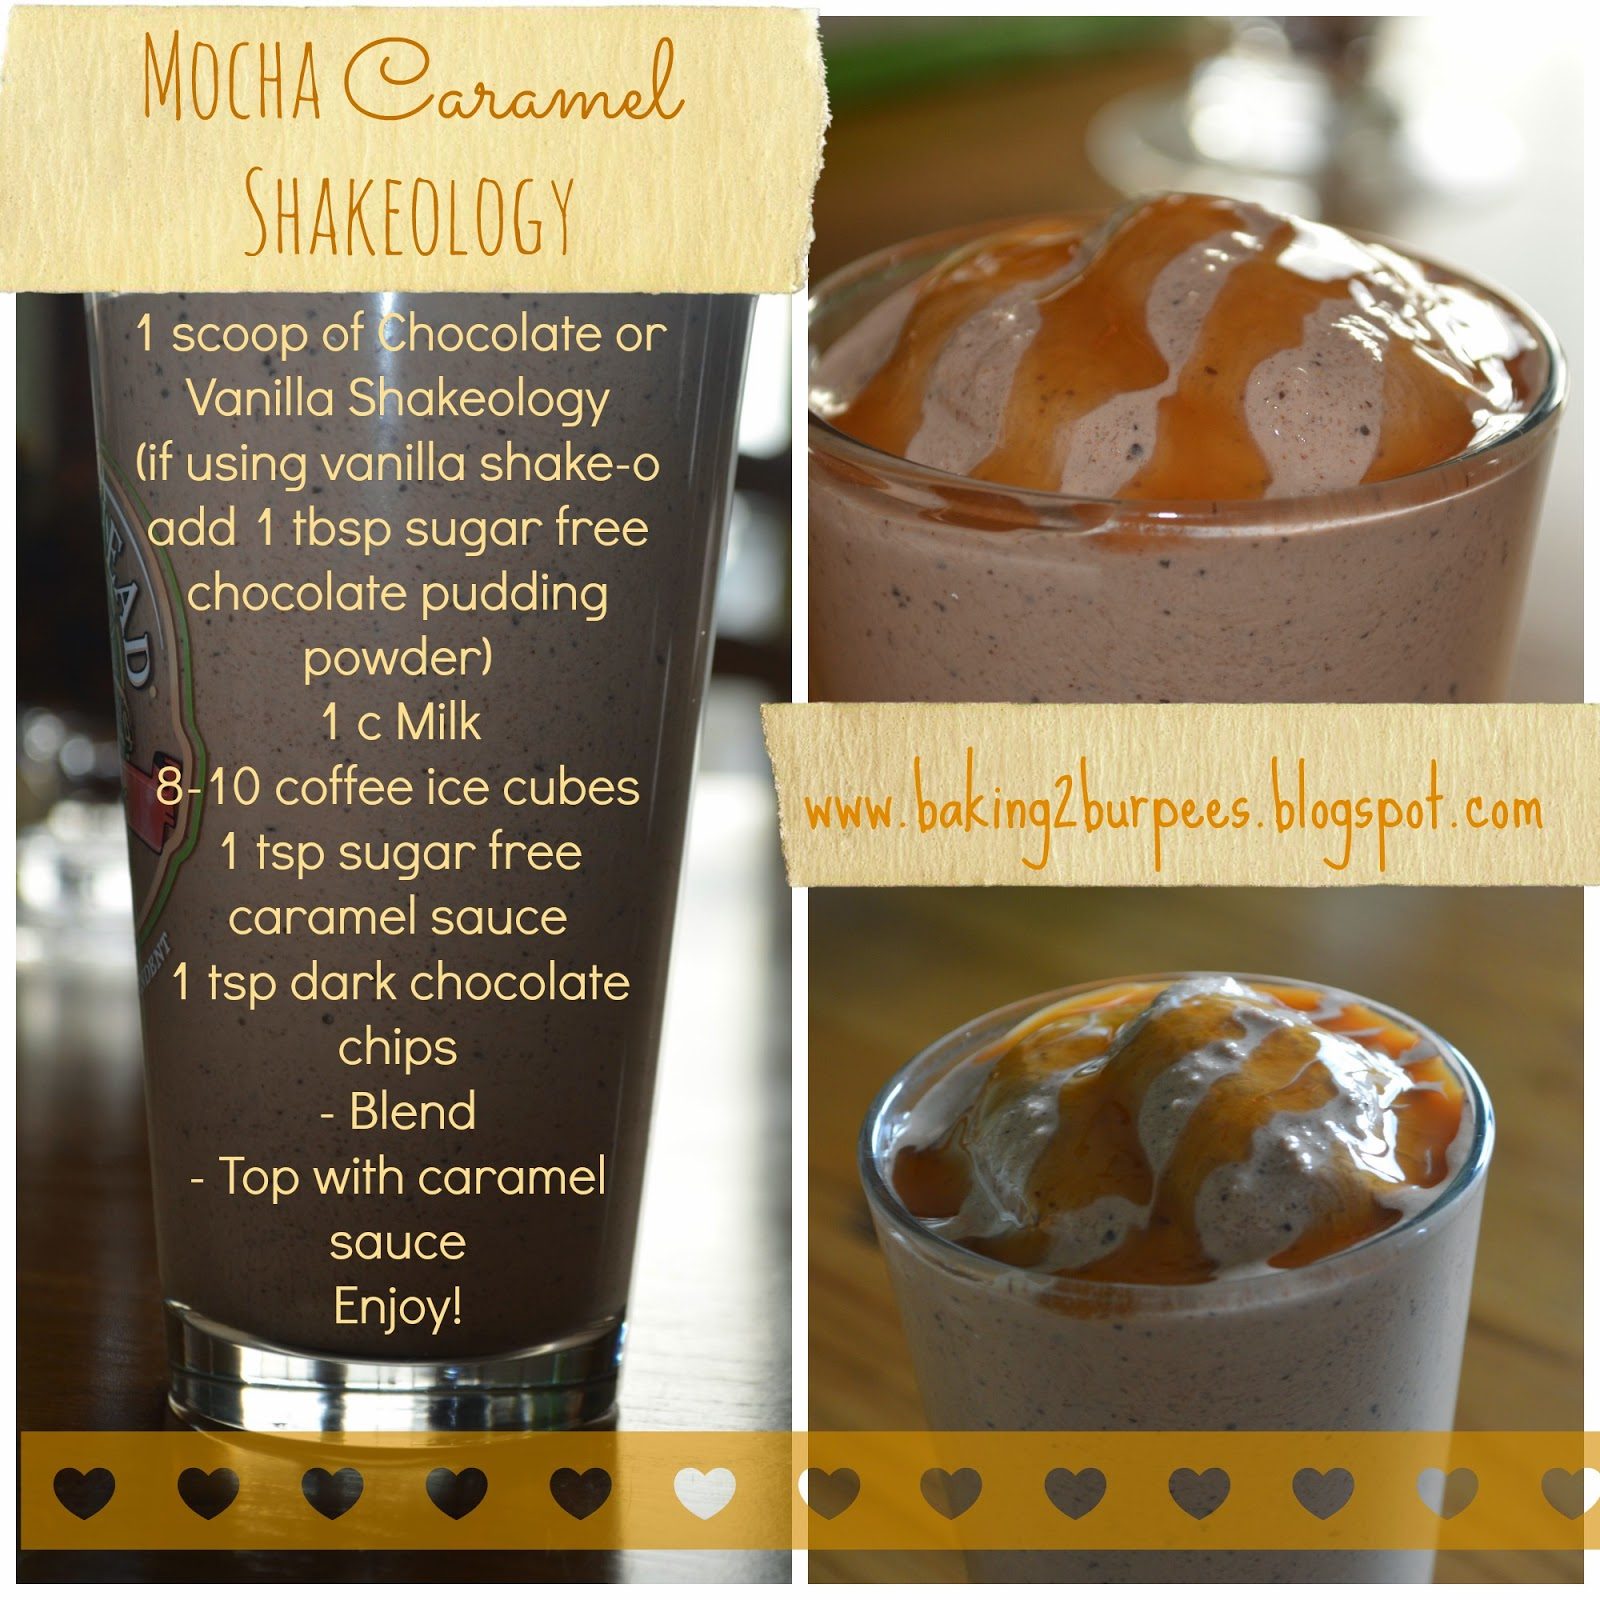 Erin Traill, Pittsburgh, mom, nurse, recipe, starbucks recipe, mocha, caramel, shakeology, weight loss, healthy recipe, coffee, dark chocolate